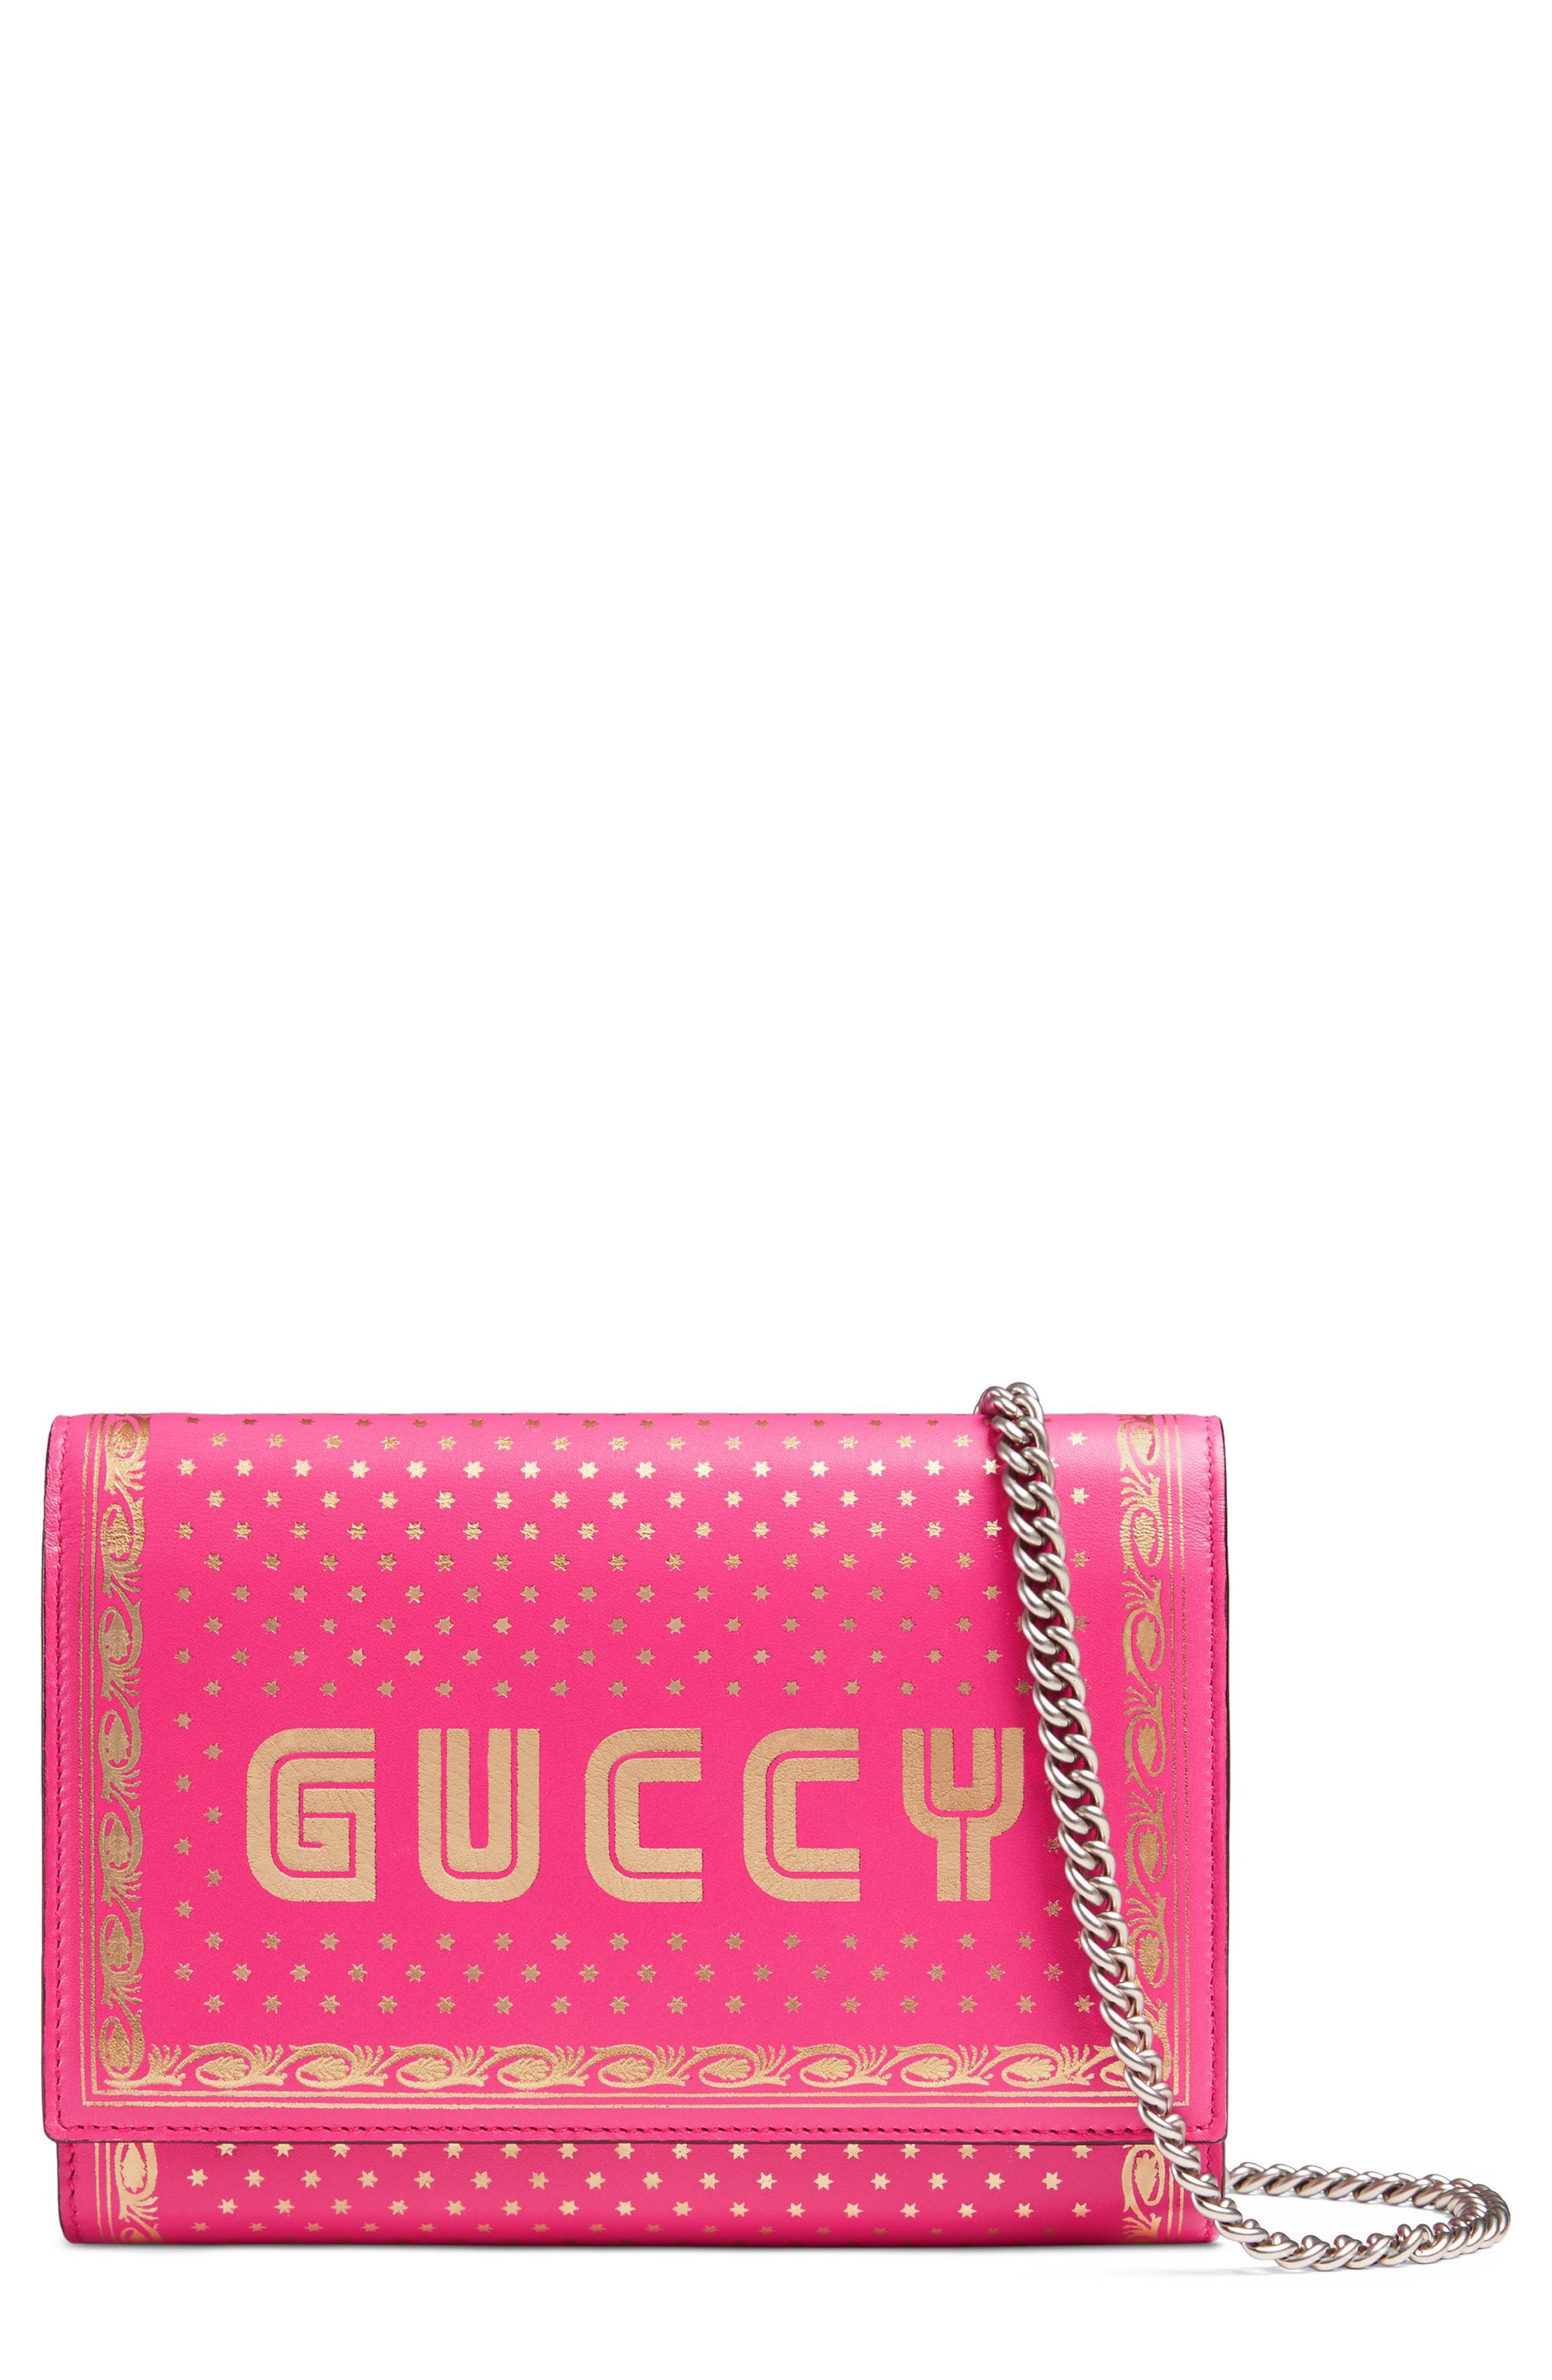 Gucci Guccy Logo Moon & Stars Leather Wallet on a Chain